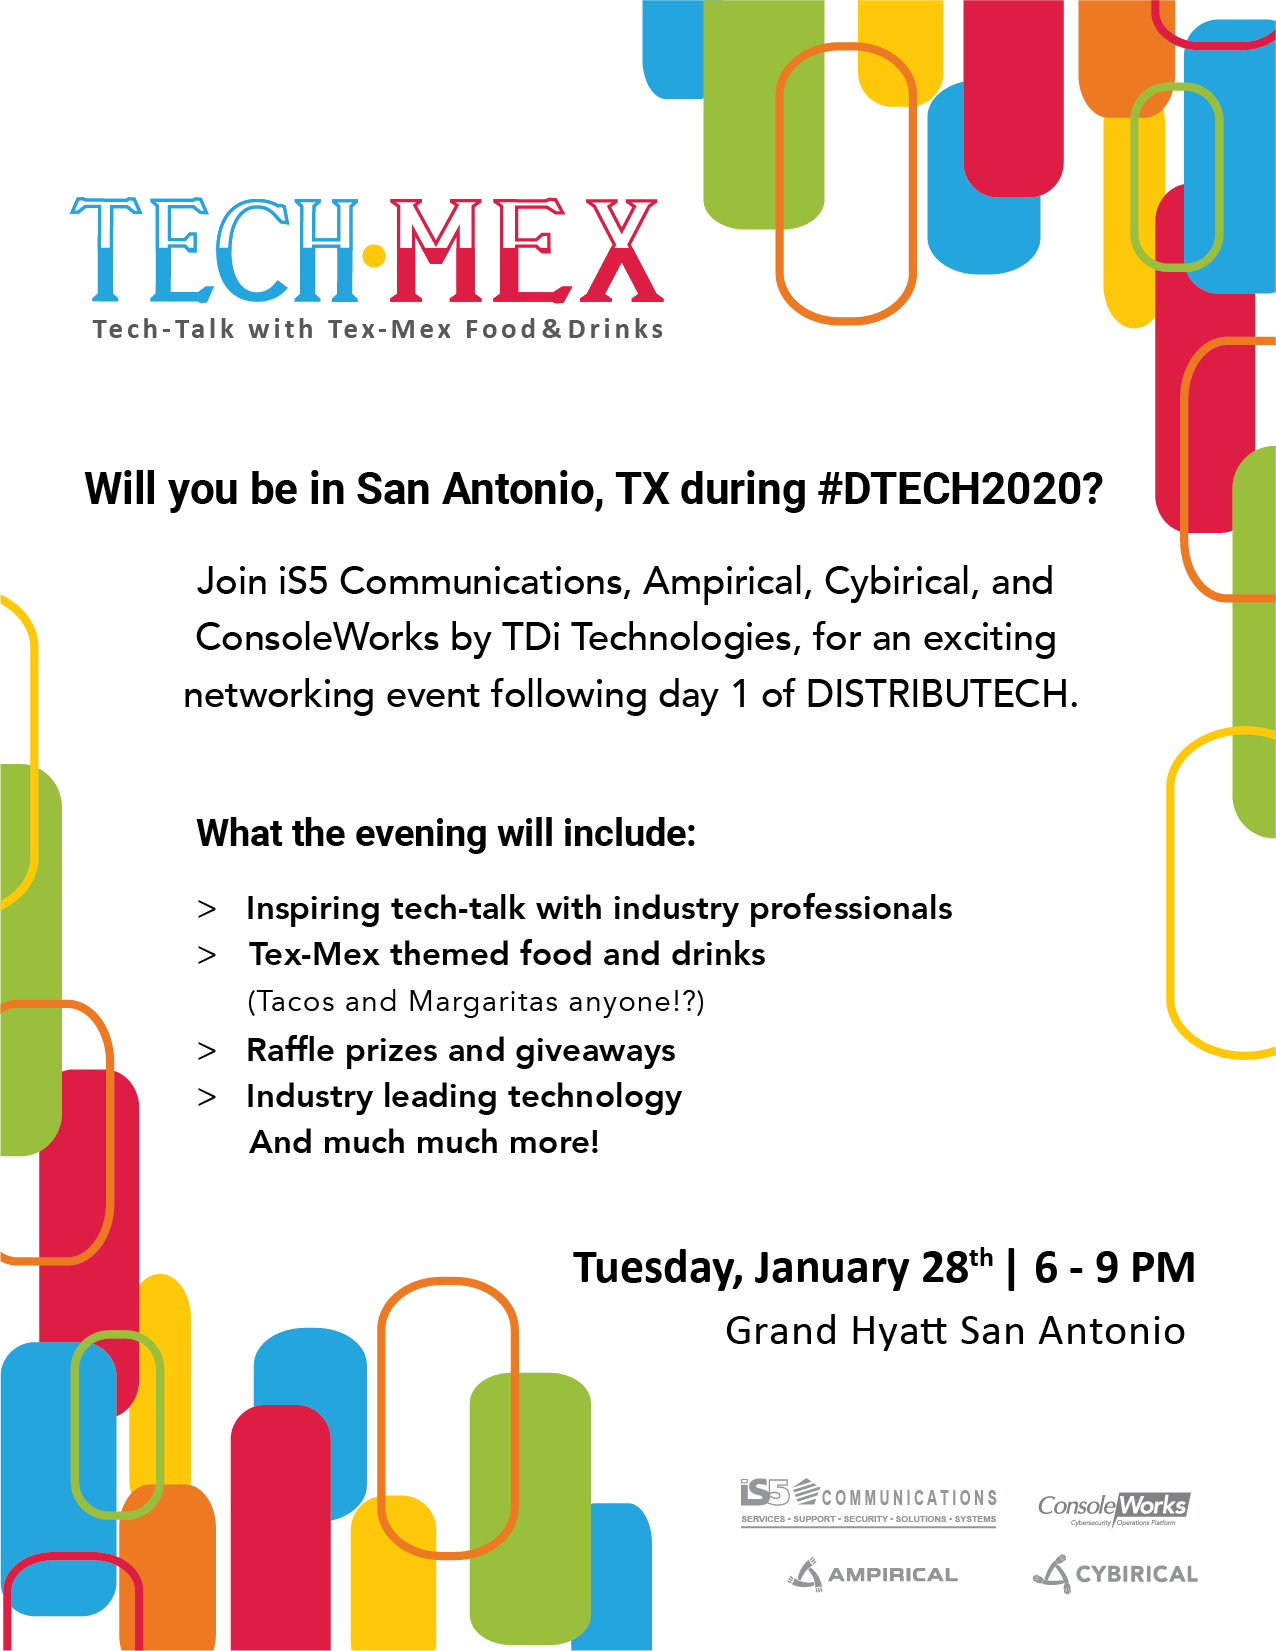 You're Invited! Tech-Mex Networking Event at DTECH2020